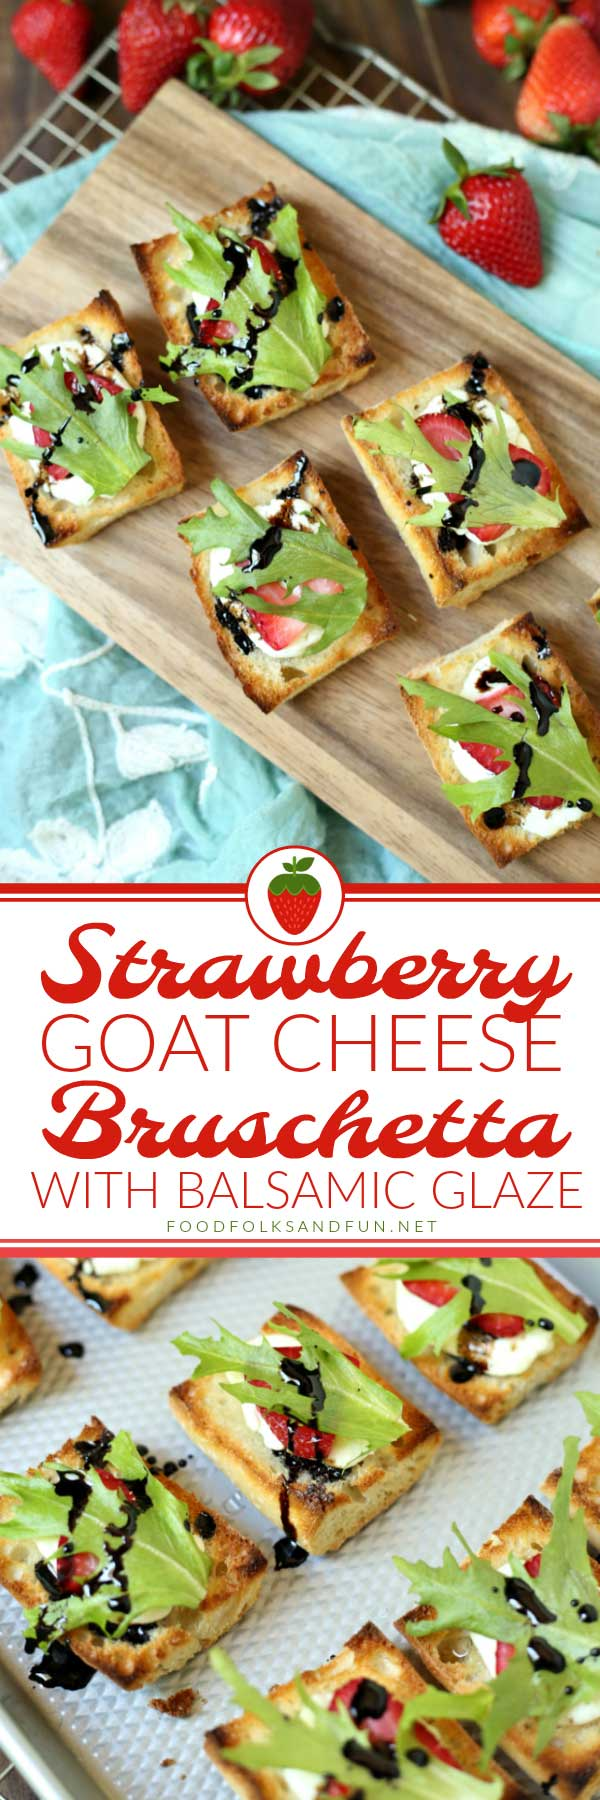 Picture collage of Strawberry Bruschetta for Pinterest.